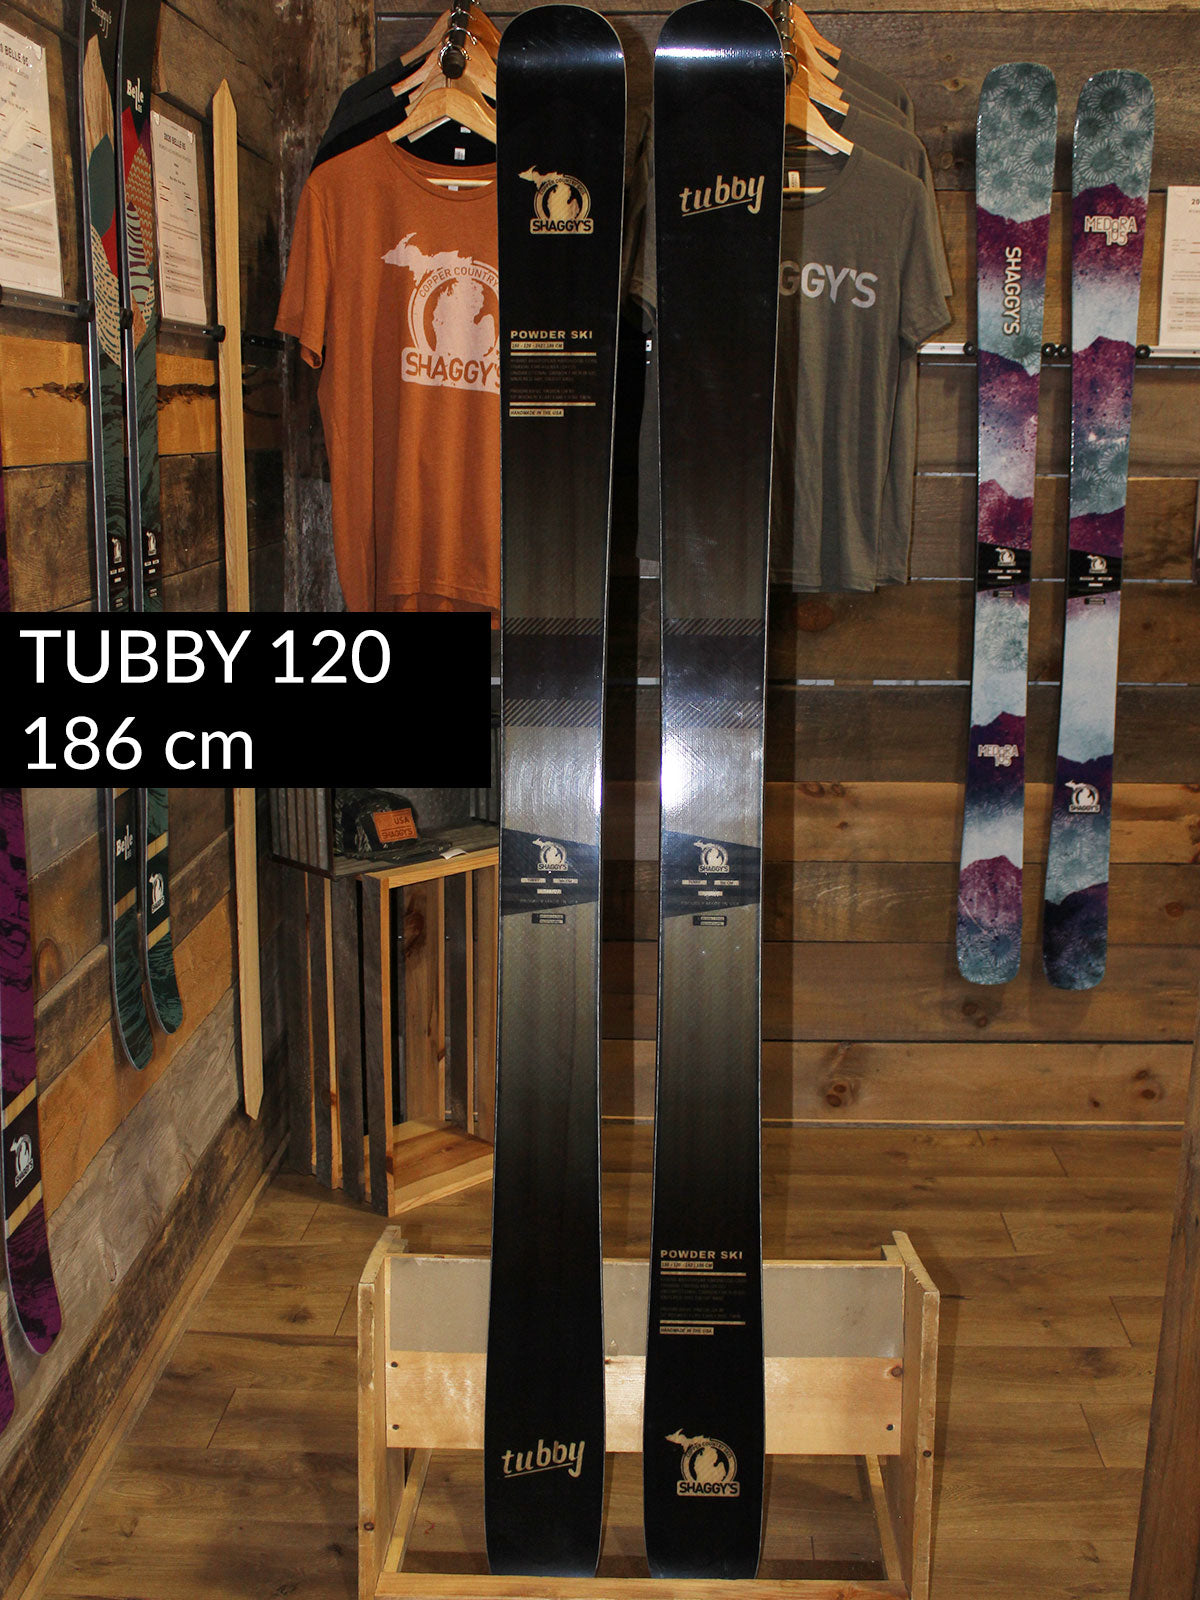 2020 Tubby 120 - 186 cm (Graphic Misprint)